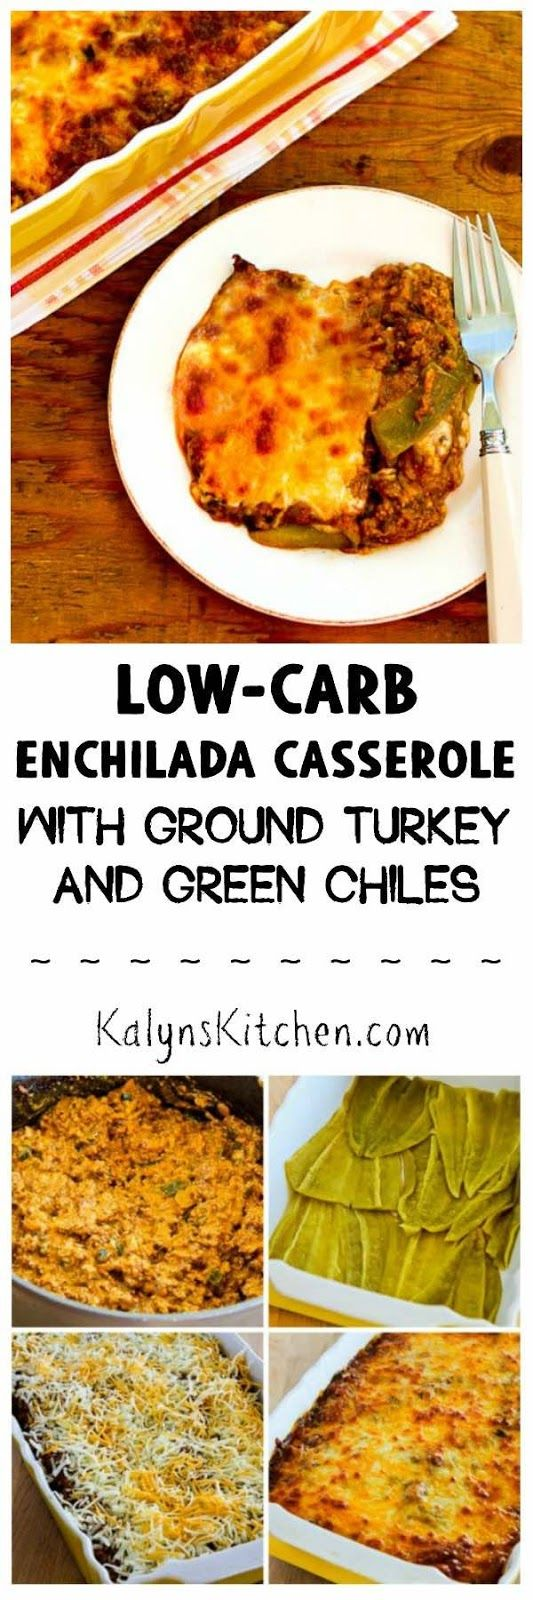 This Low-Carb Enchilada Casserole with Ground Turkey and Chiles is pure low-carb comfort food. This casserole can help you survive the holidays or get back on track in the new year!  [found on KalynsKitchen.com]